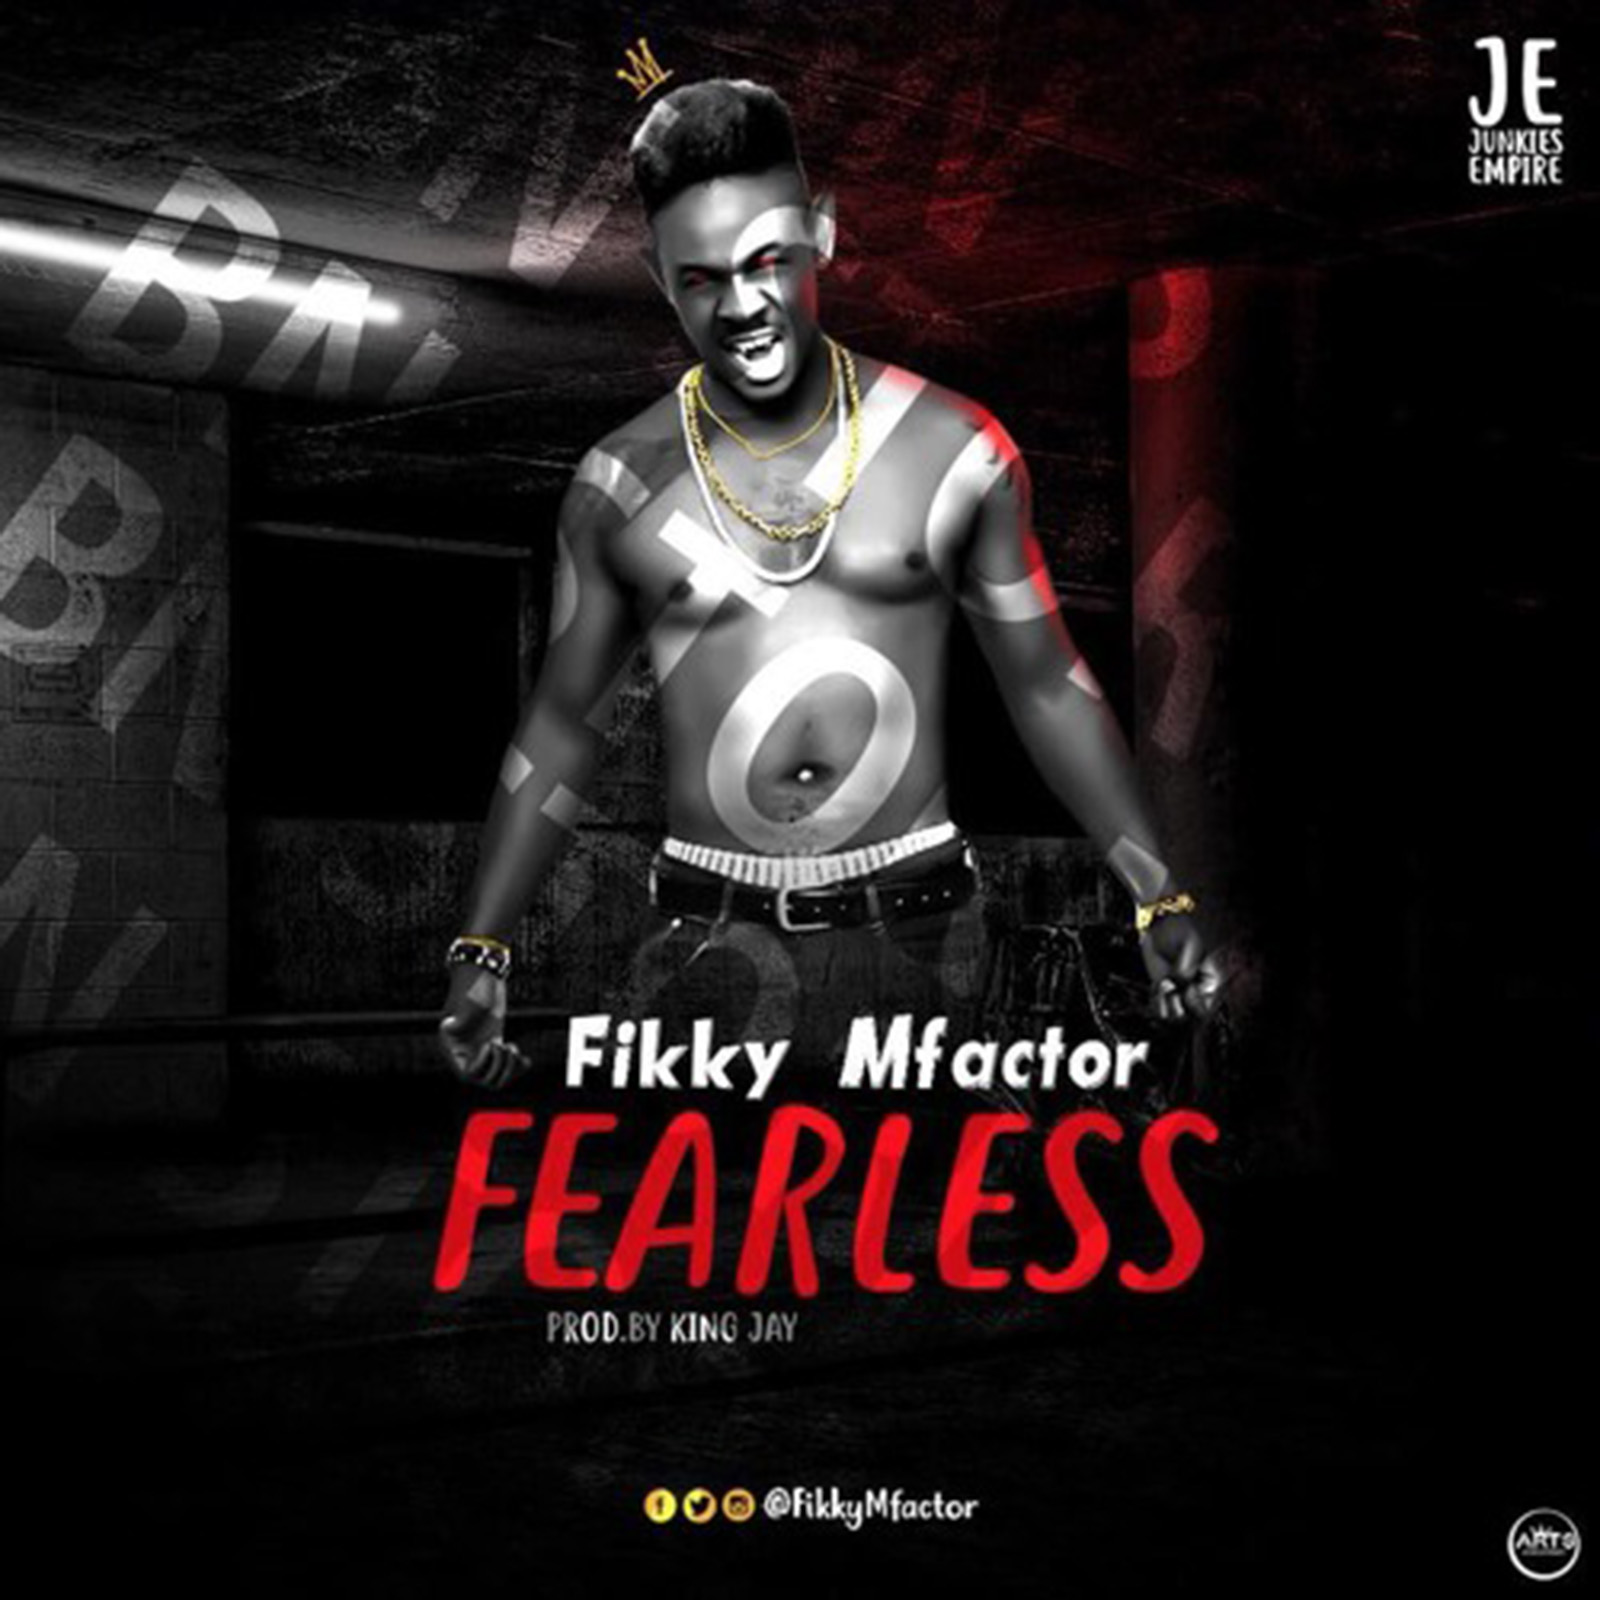 Fearless by Fikky Mfactor